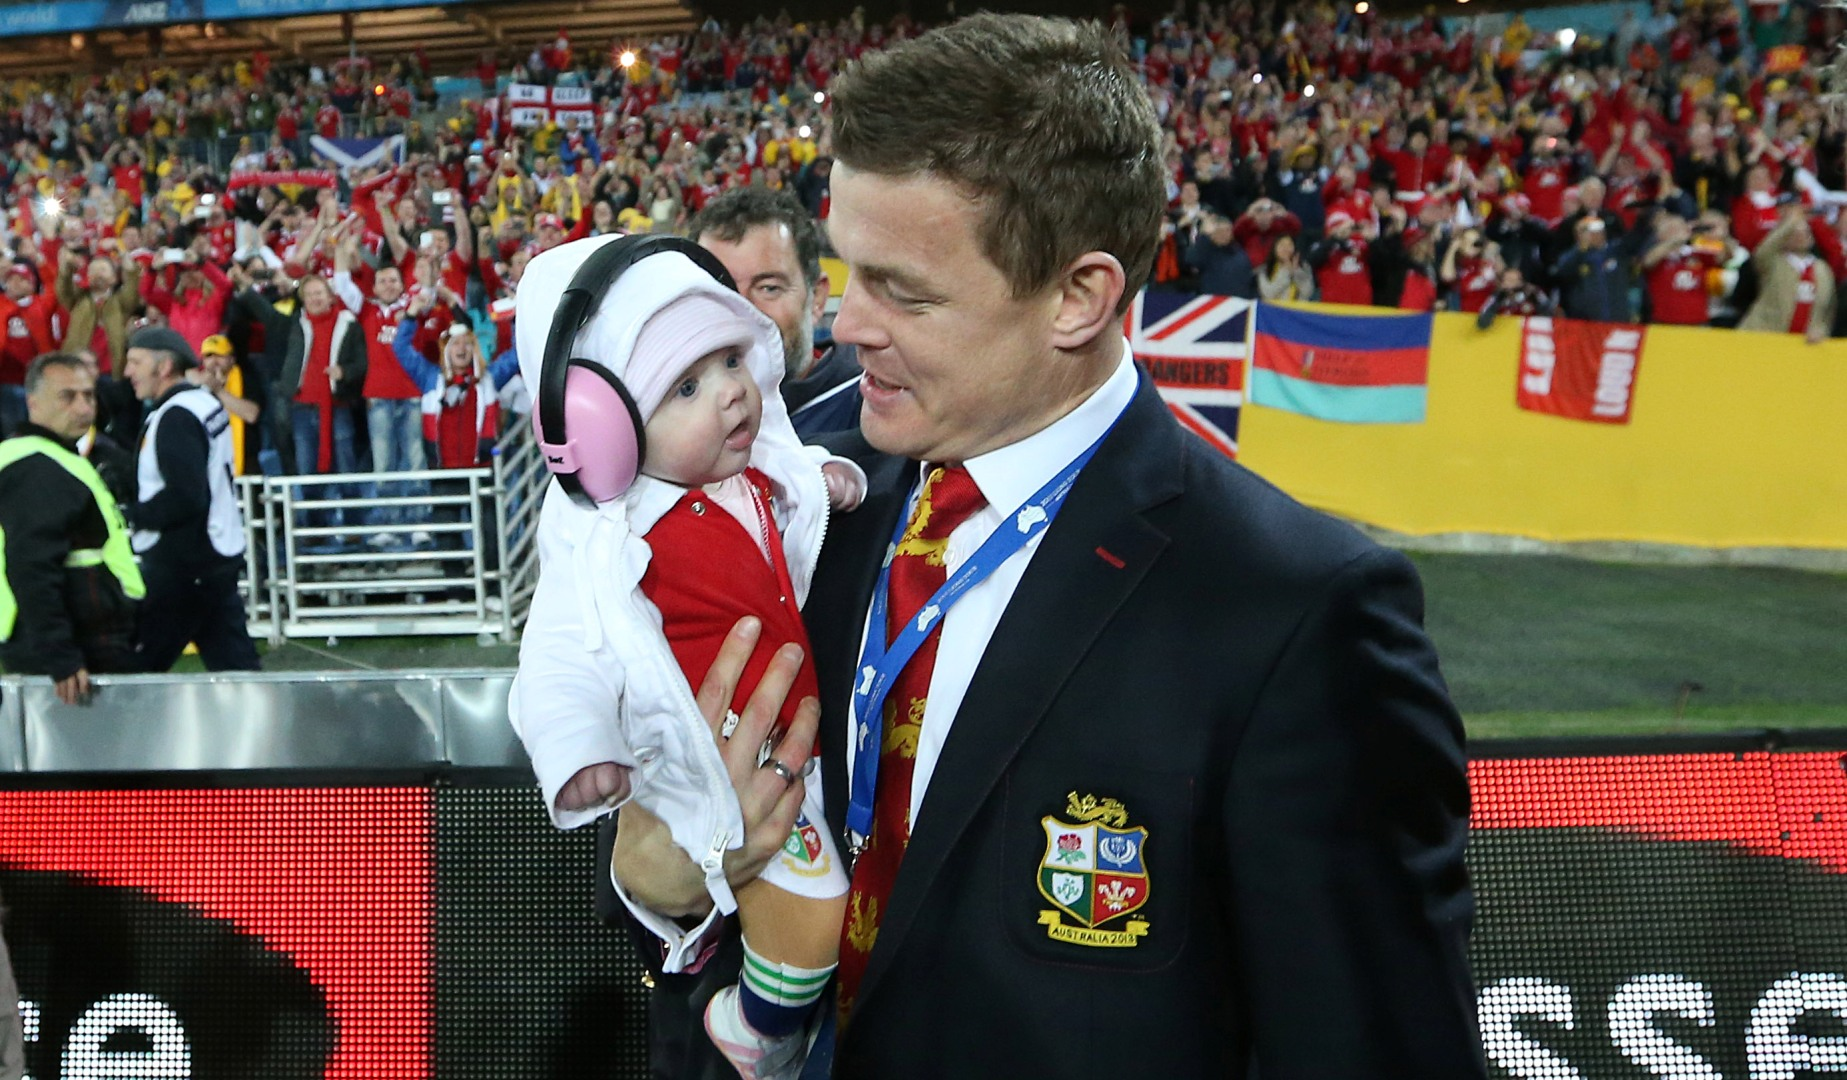 British & Irish Lions legends: Brian O'Driscoll